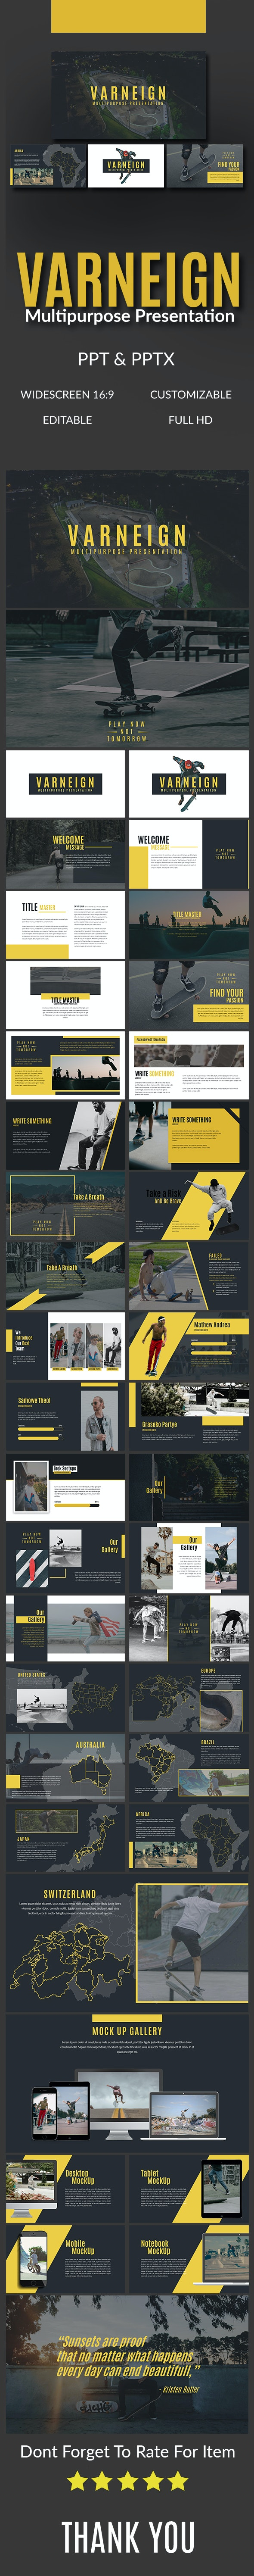 Varneign Multipurpose Presentation - Abstract PowerPoint Templates